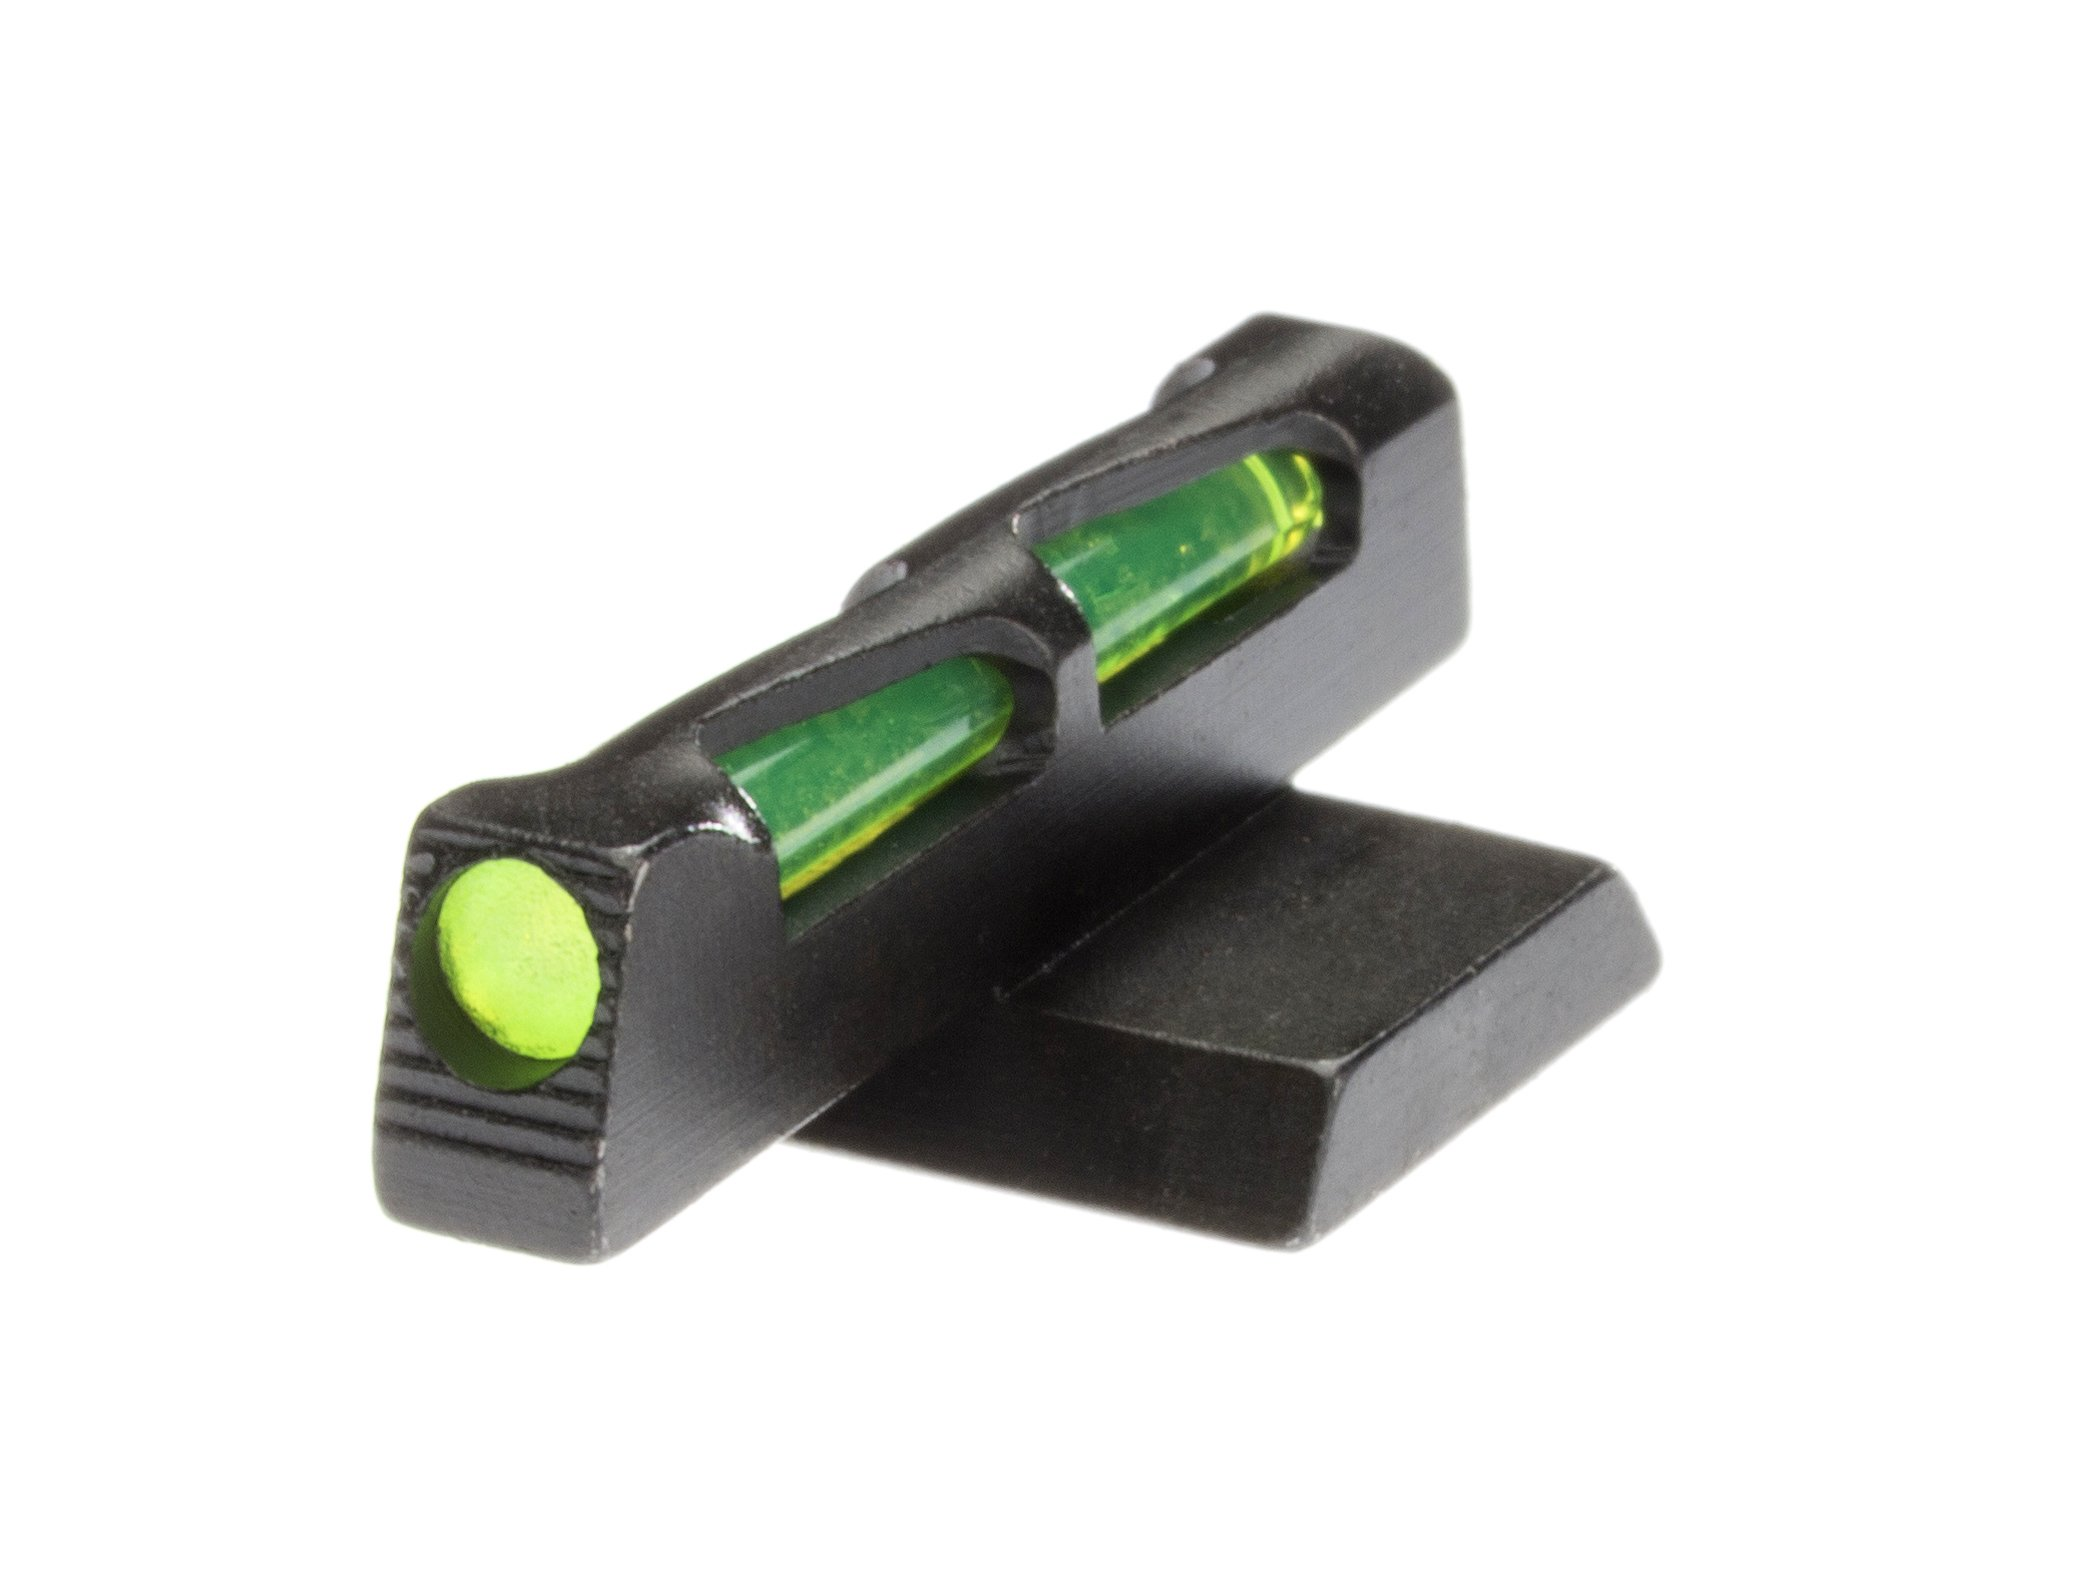 HiViz Springfield Armory 1911 Lite Wave Front Sight Handgun by HiViz